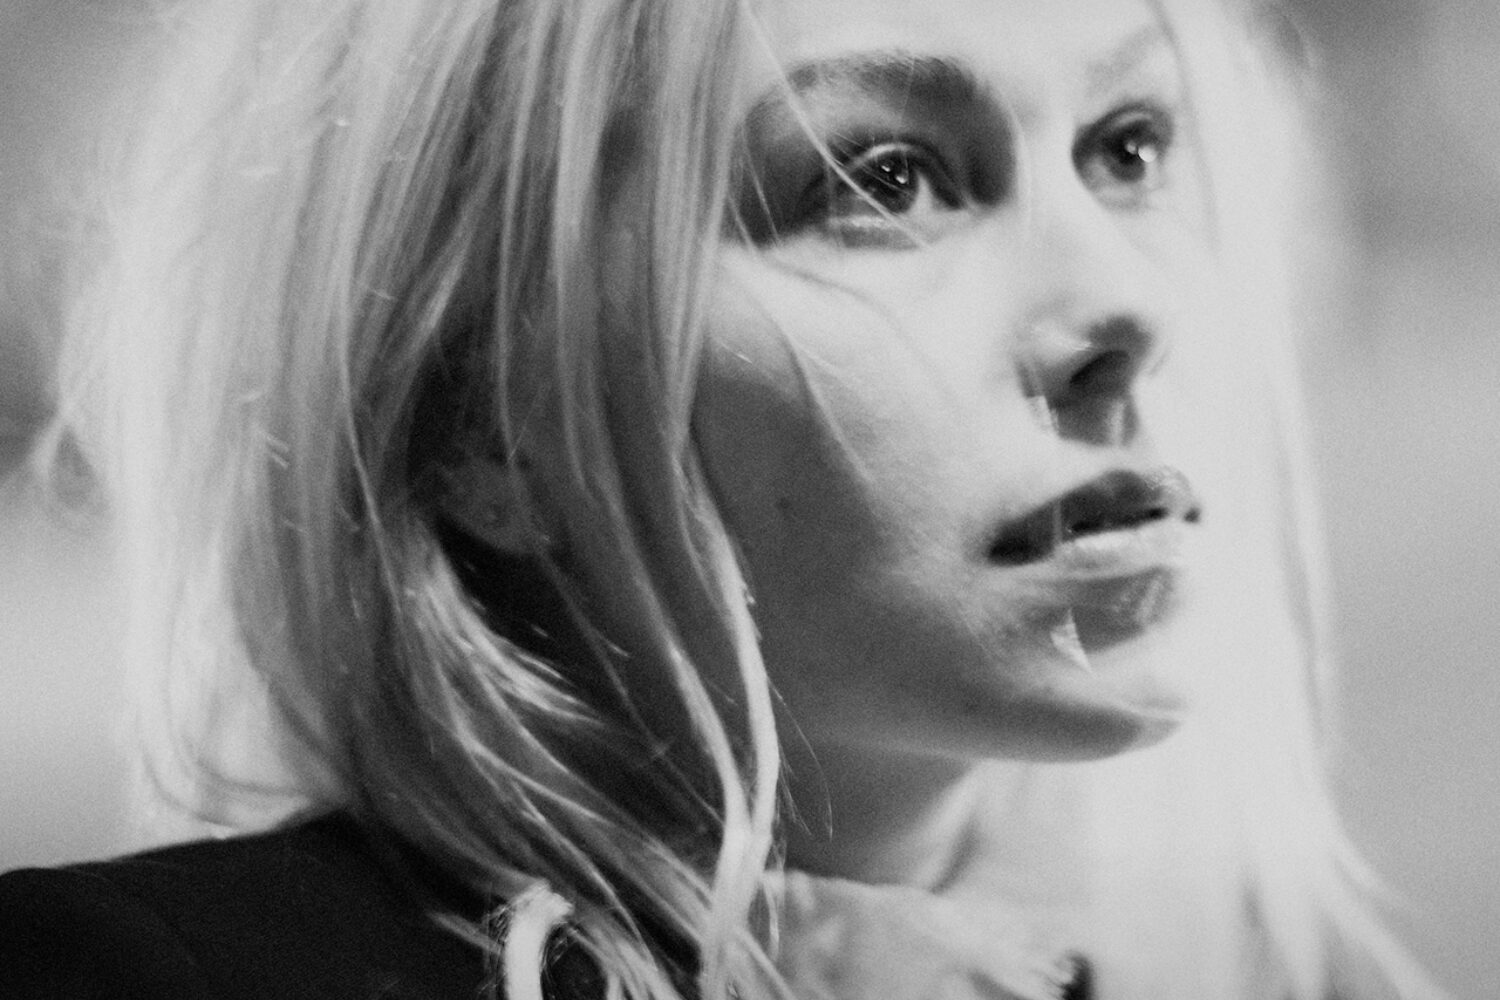 Phoebe Bridgers links up with Jackson Browne for new version of 'Kyoto'